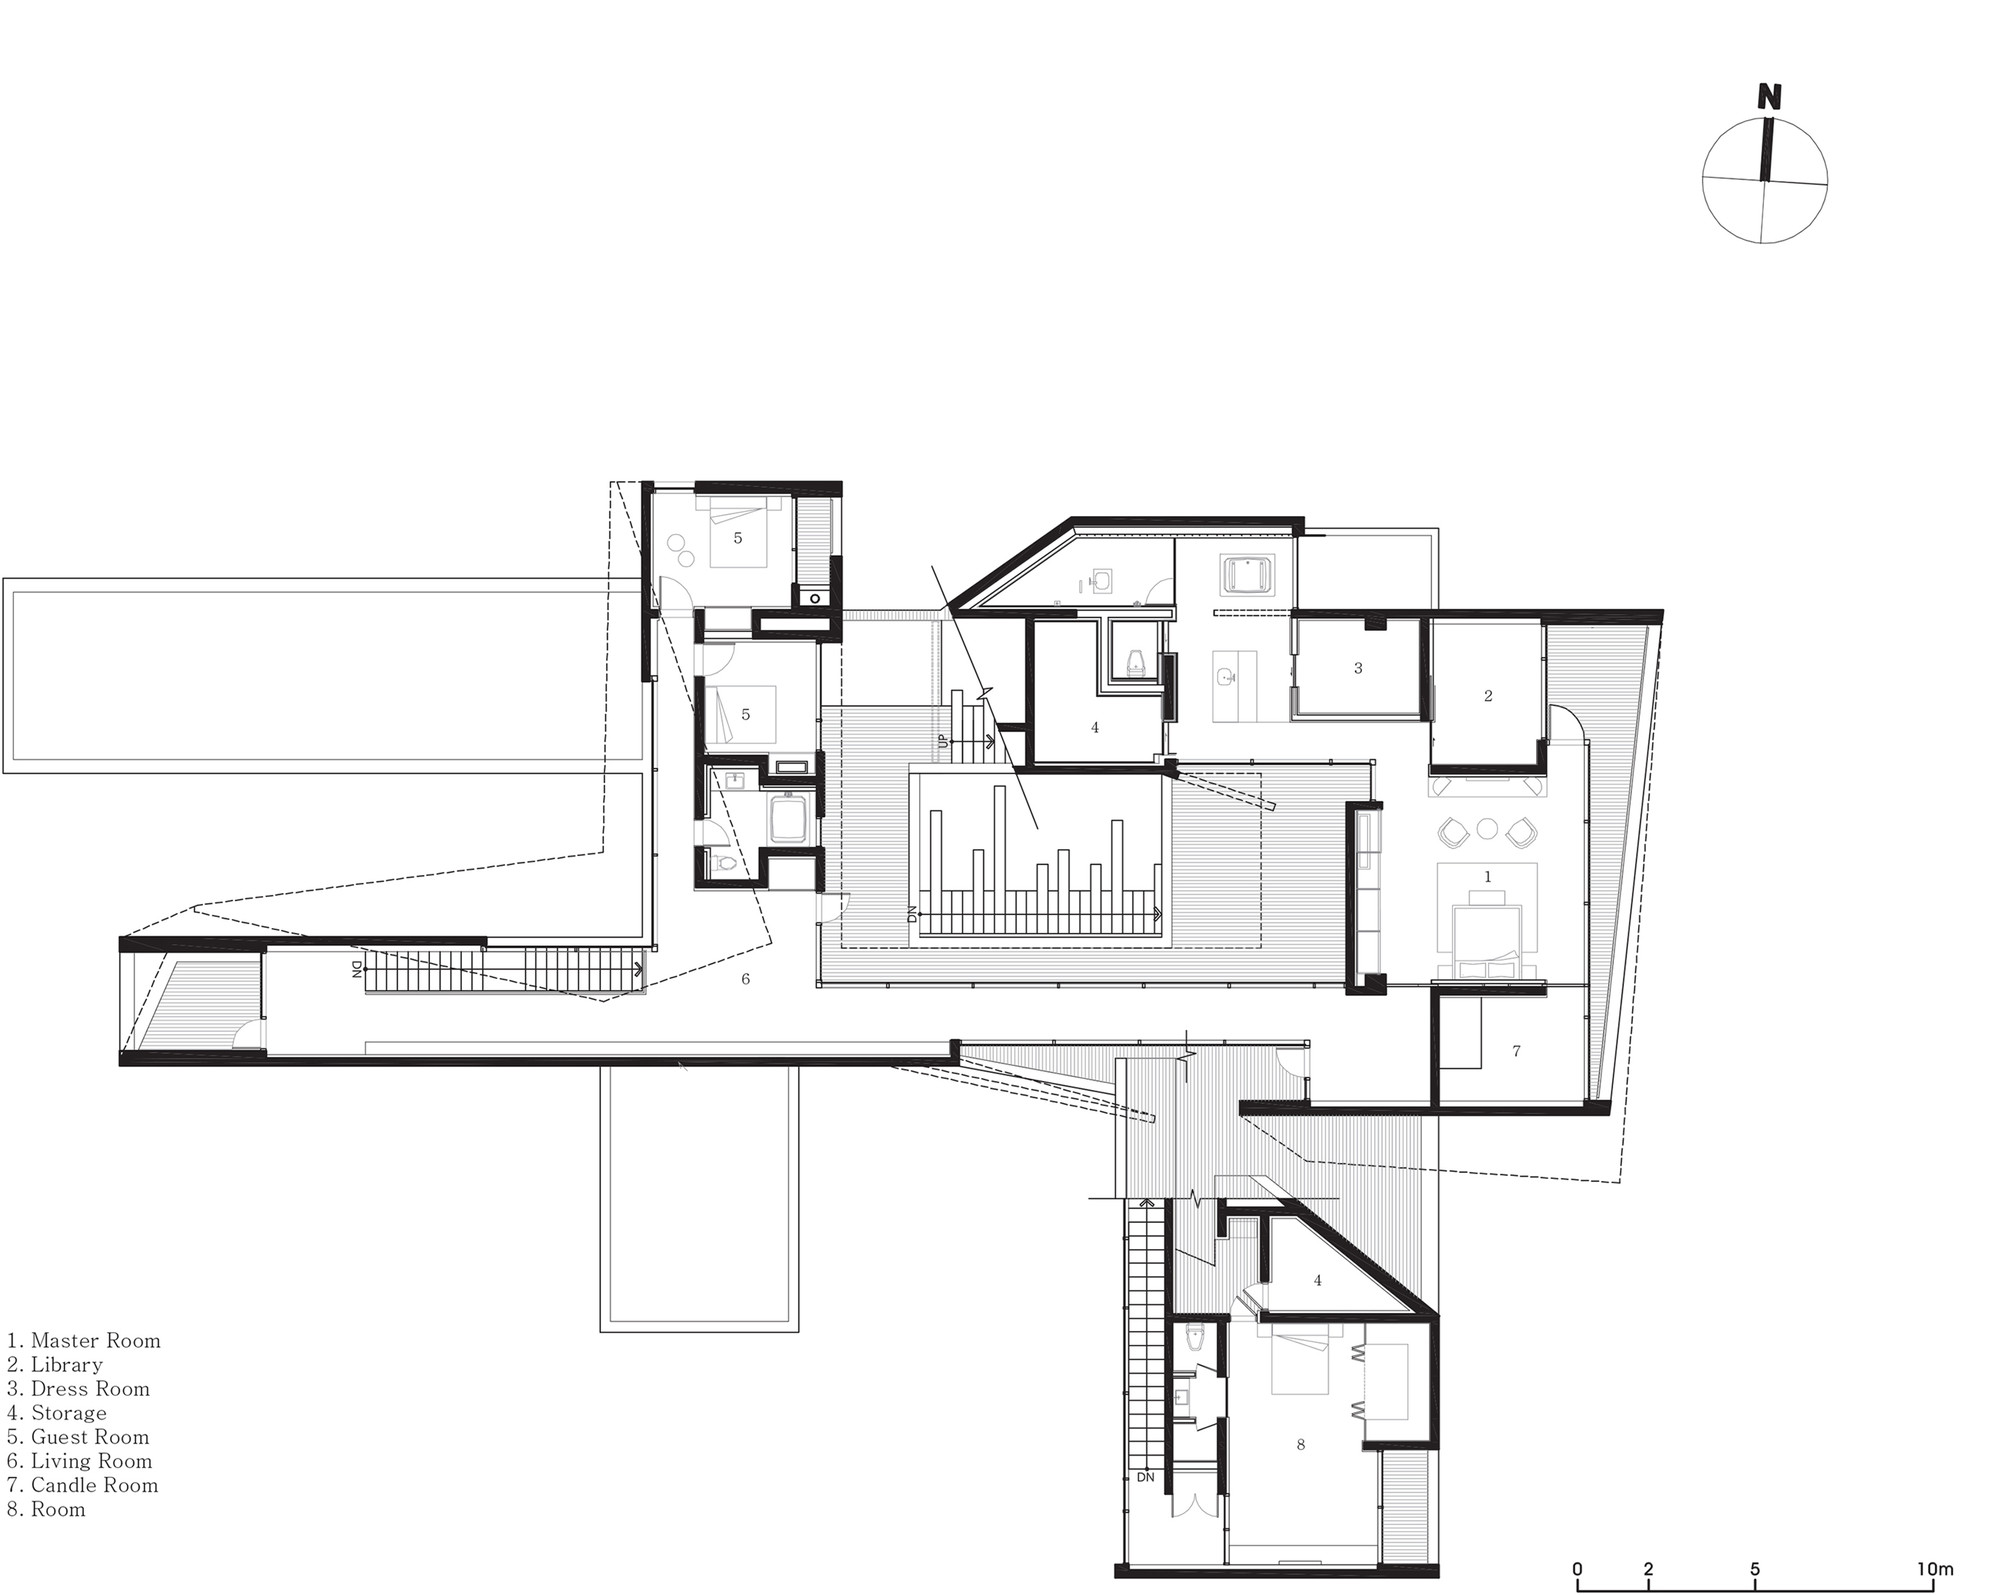 guest house floor plan gallery of guest house rivendell idmm architects 19 17996